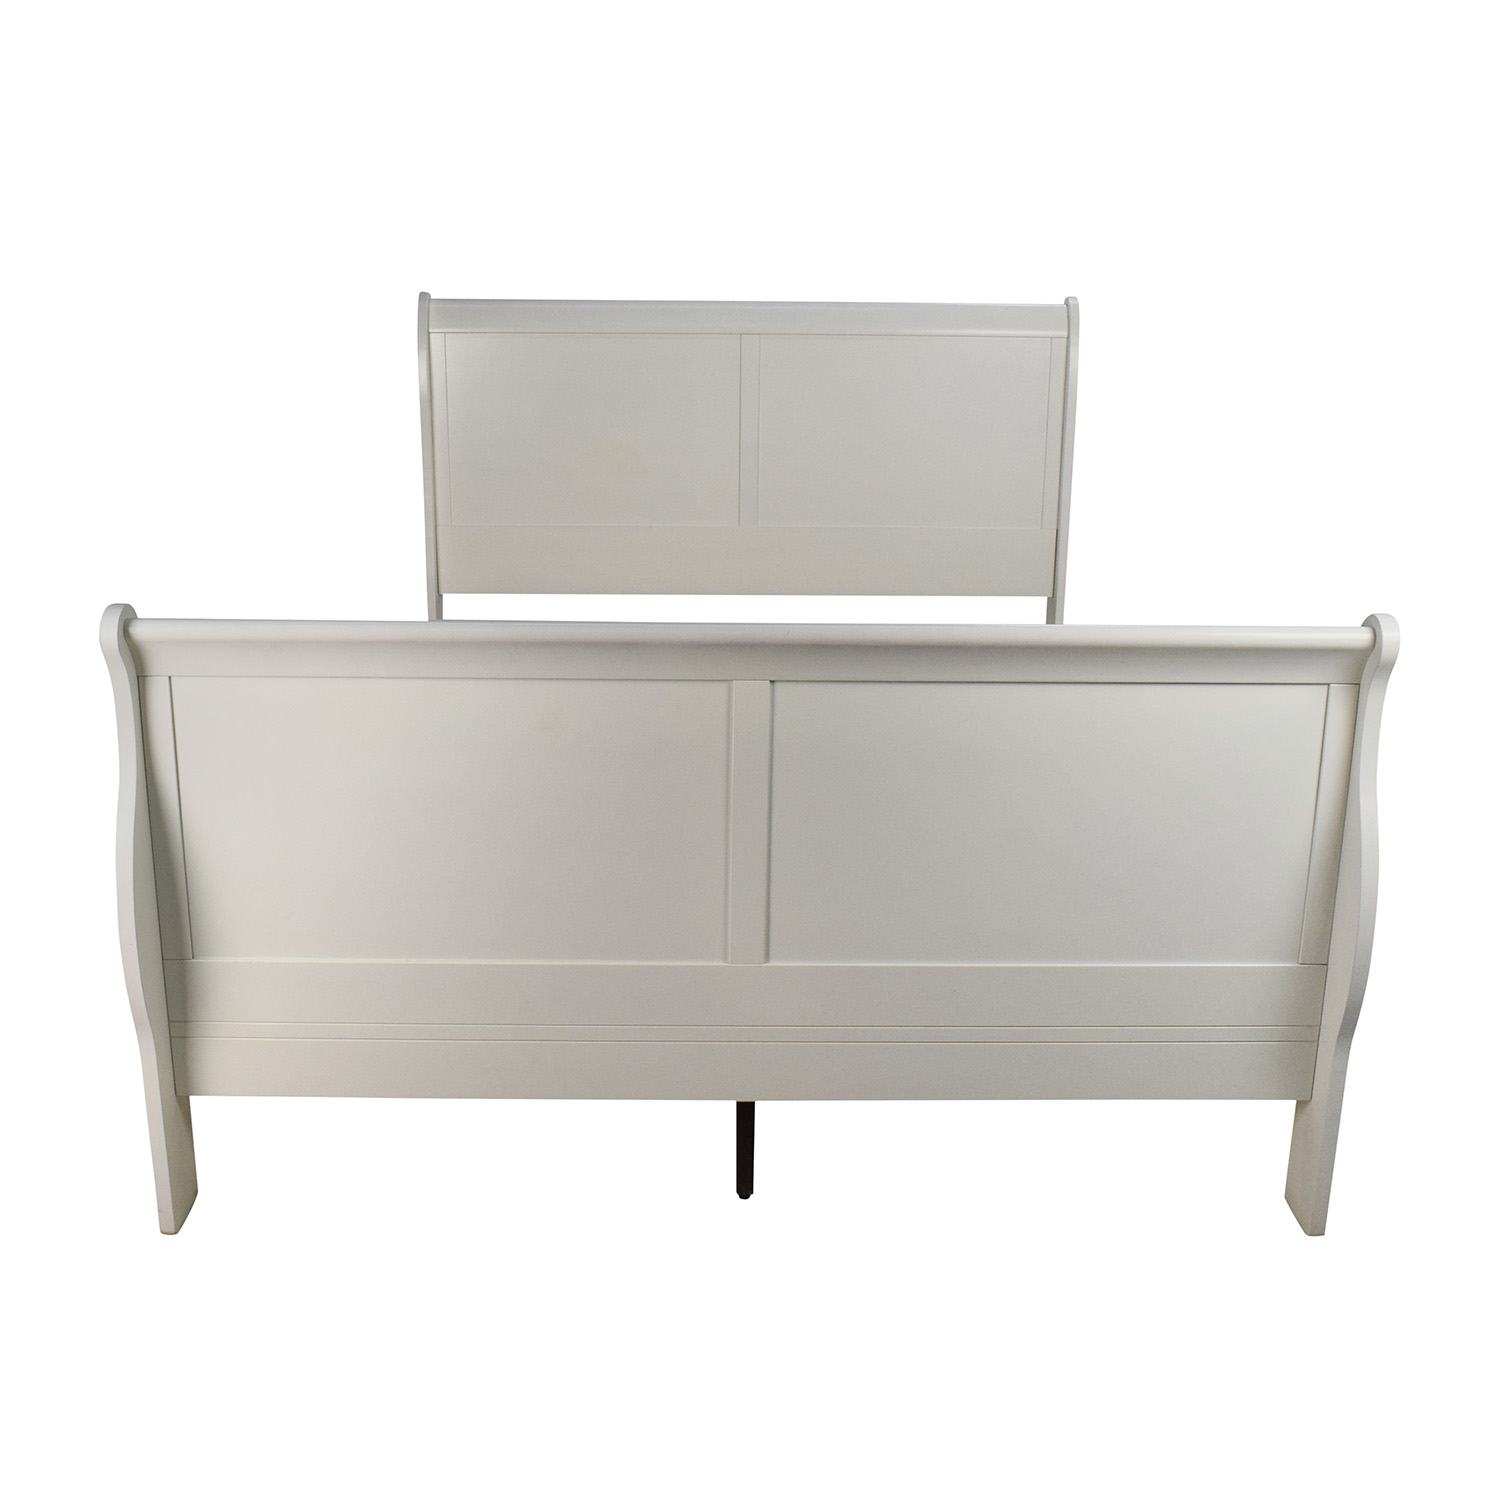 White Wooden Sleigh Bed dimensions